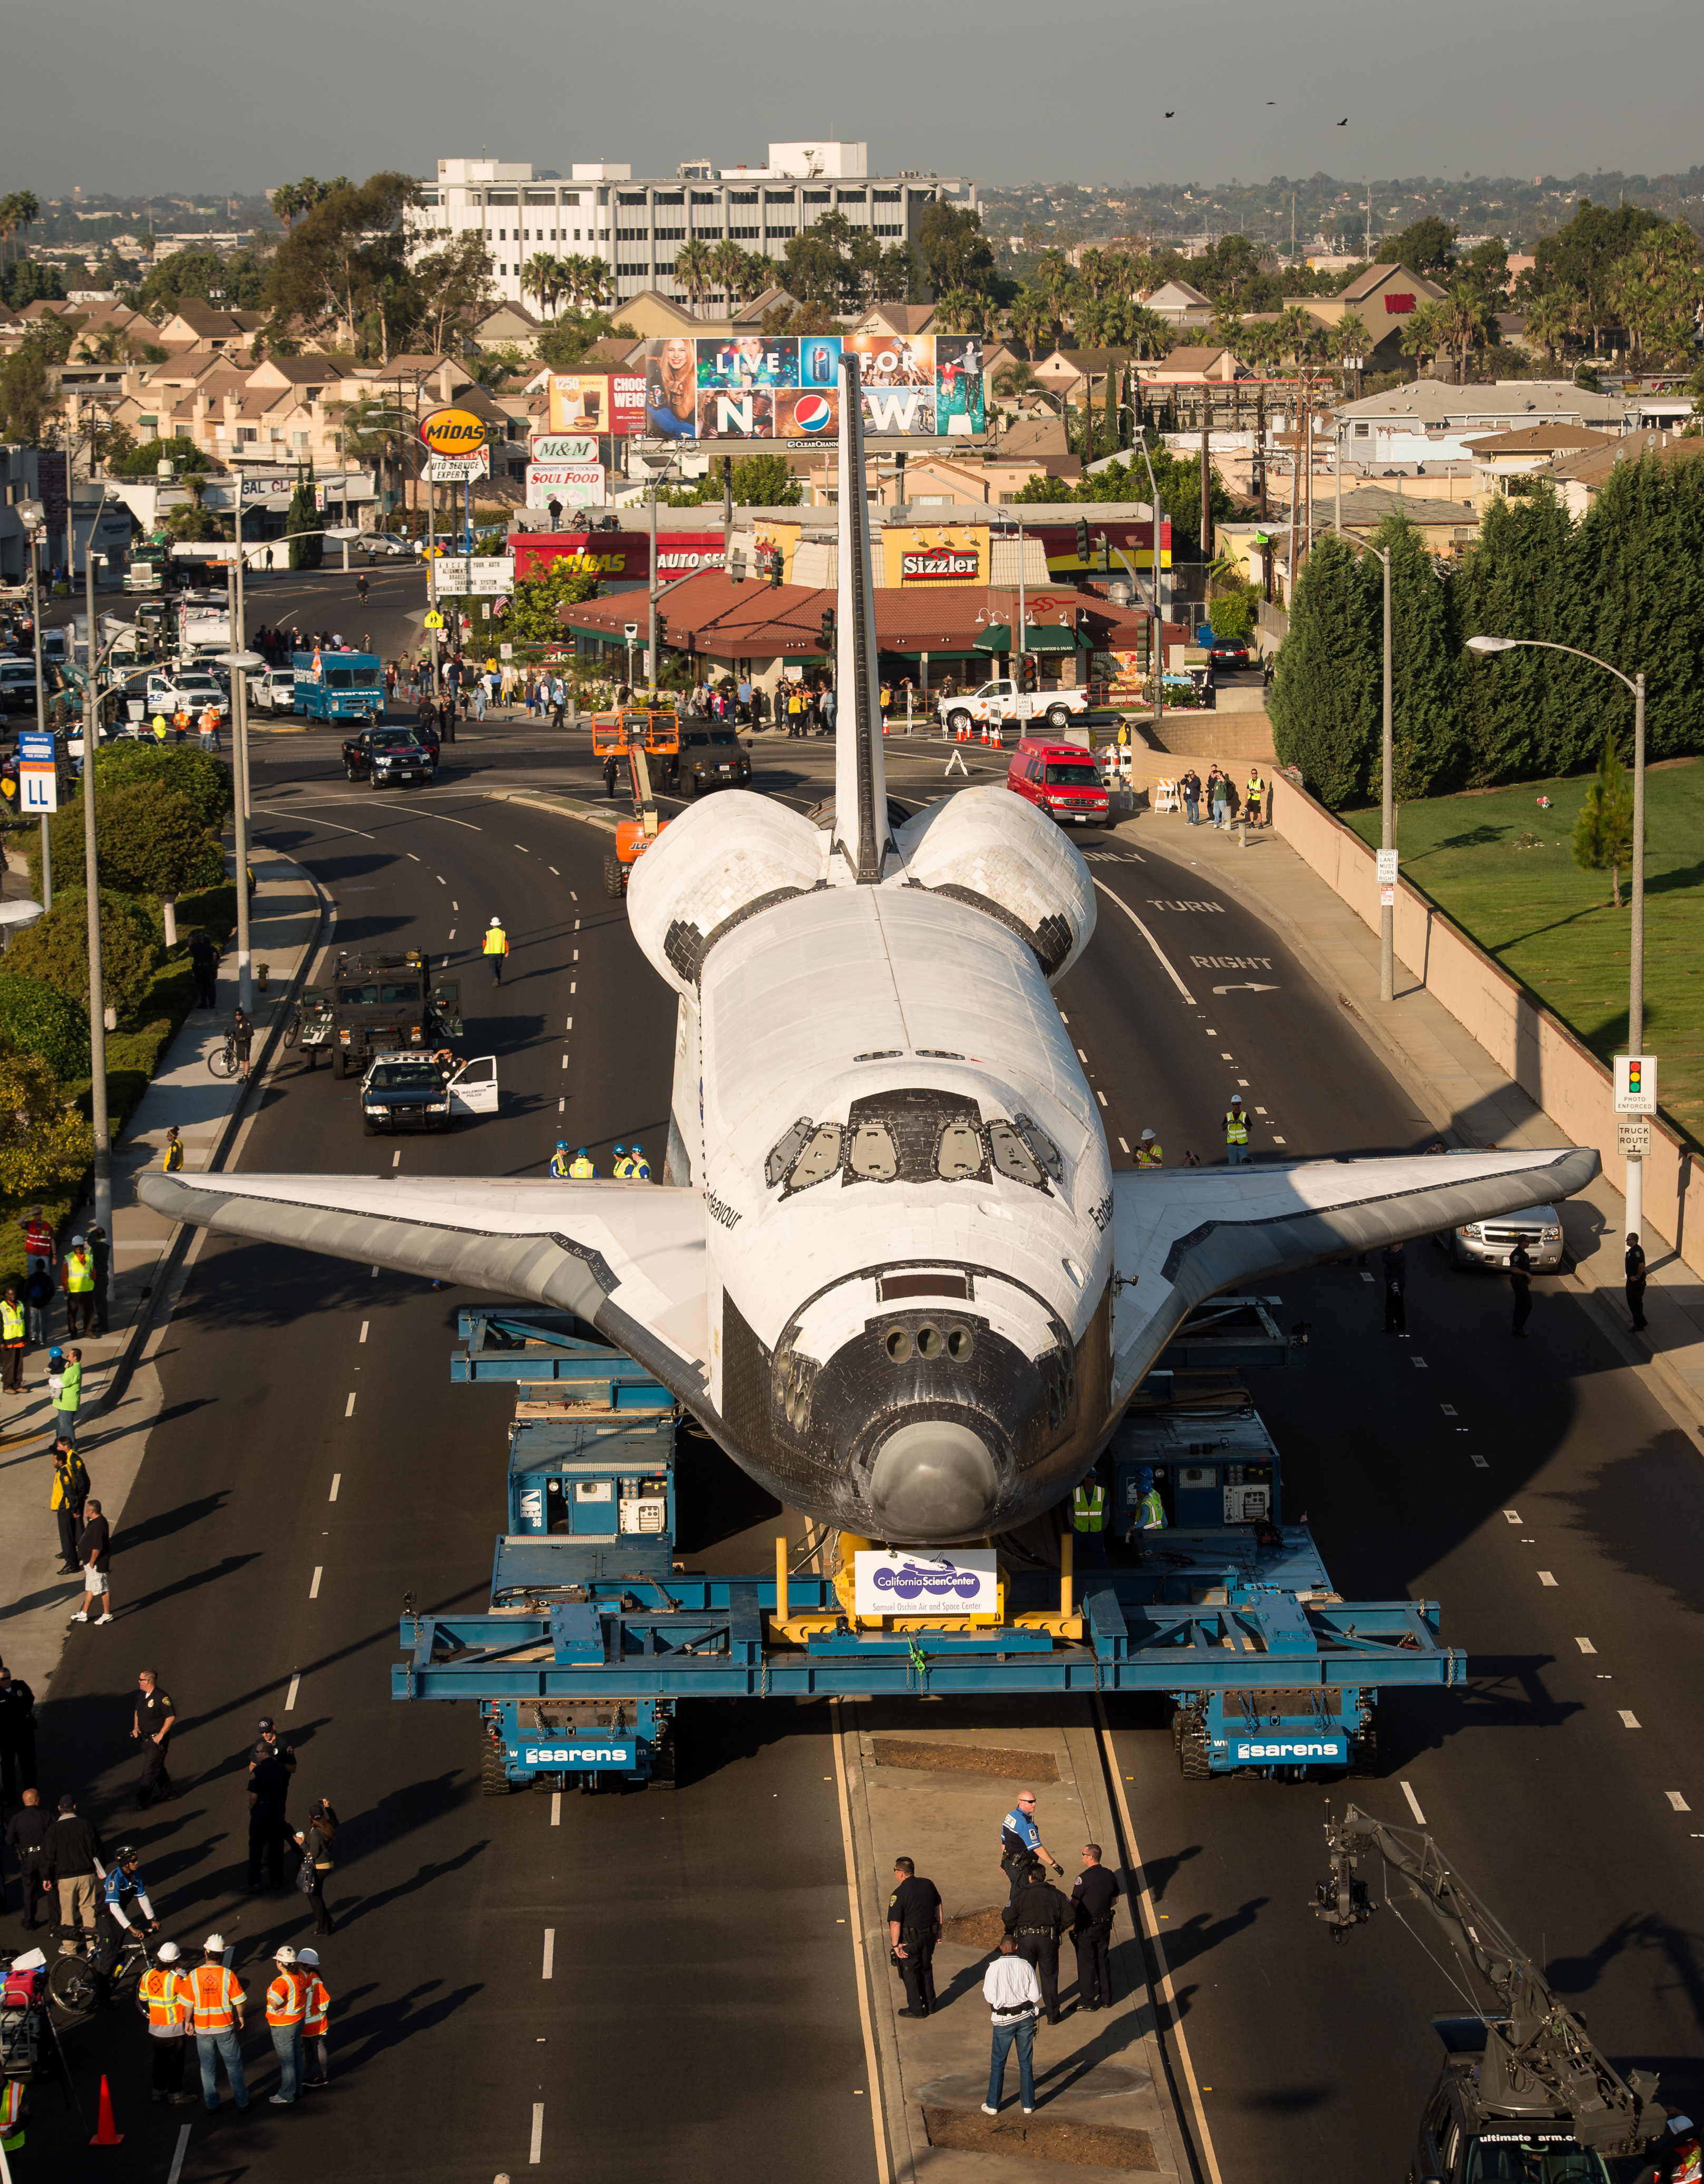 Space shuttle Endeavour parked on a city street